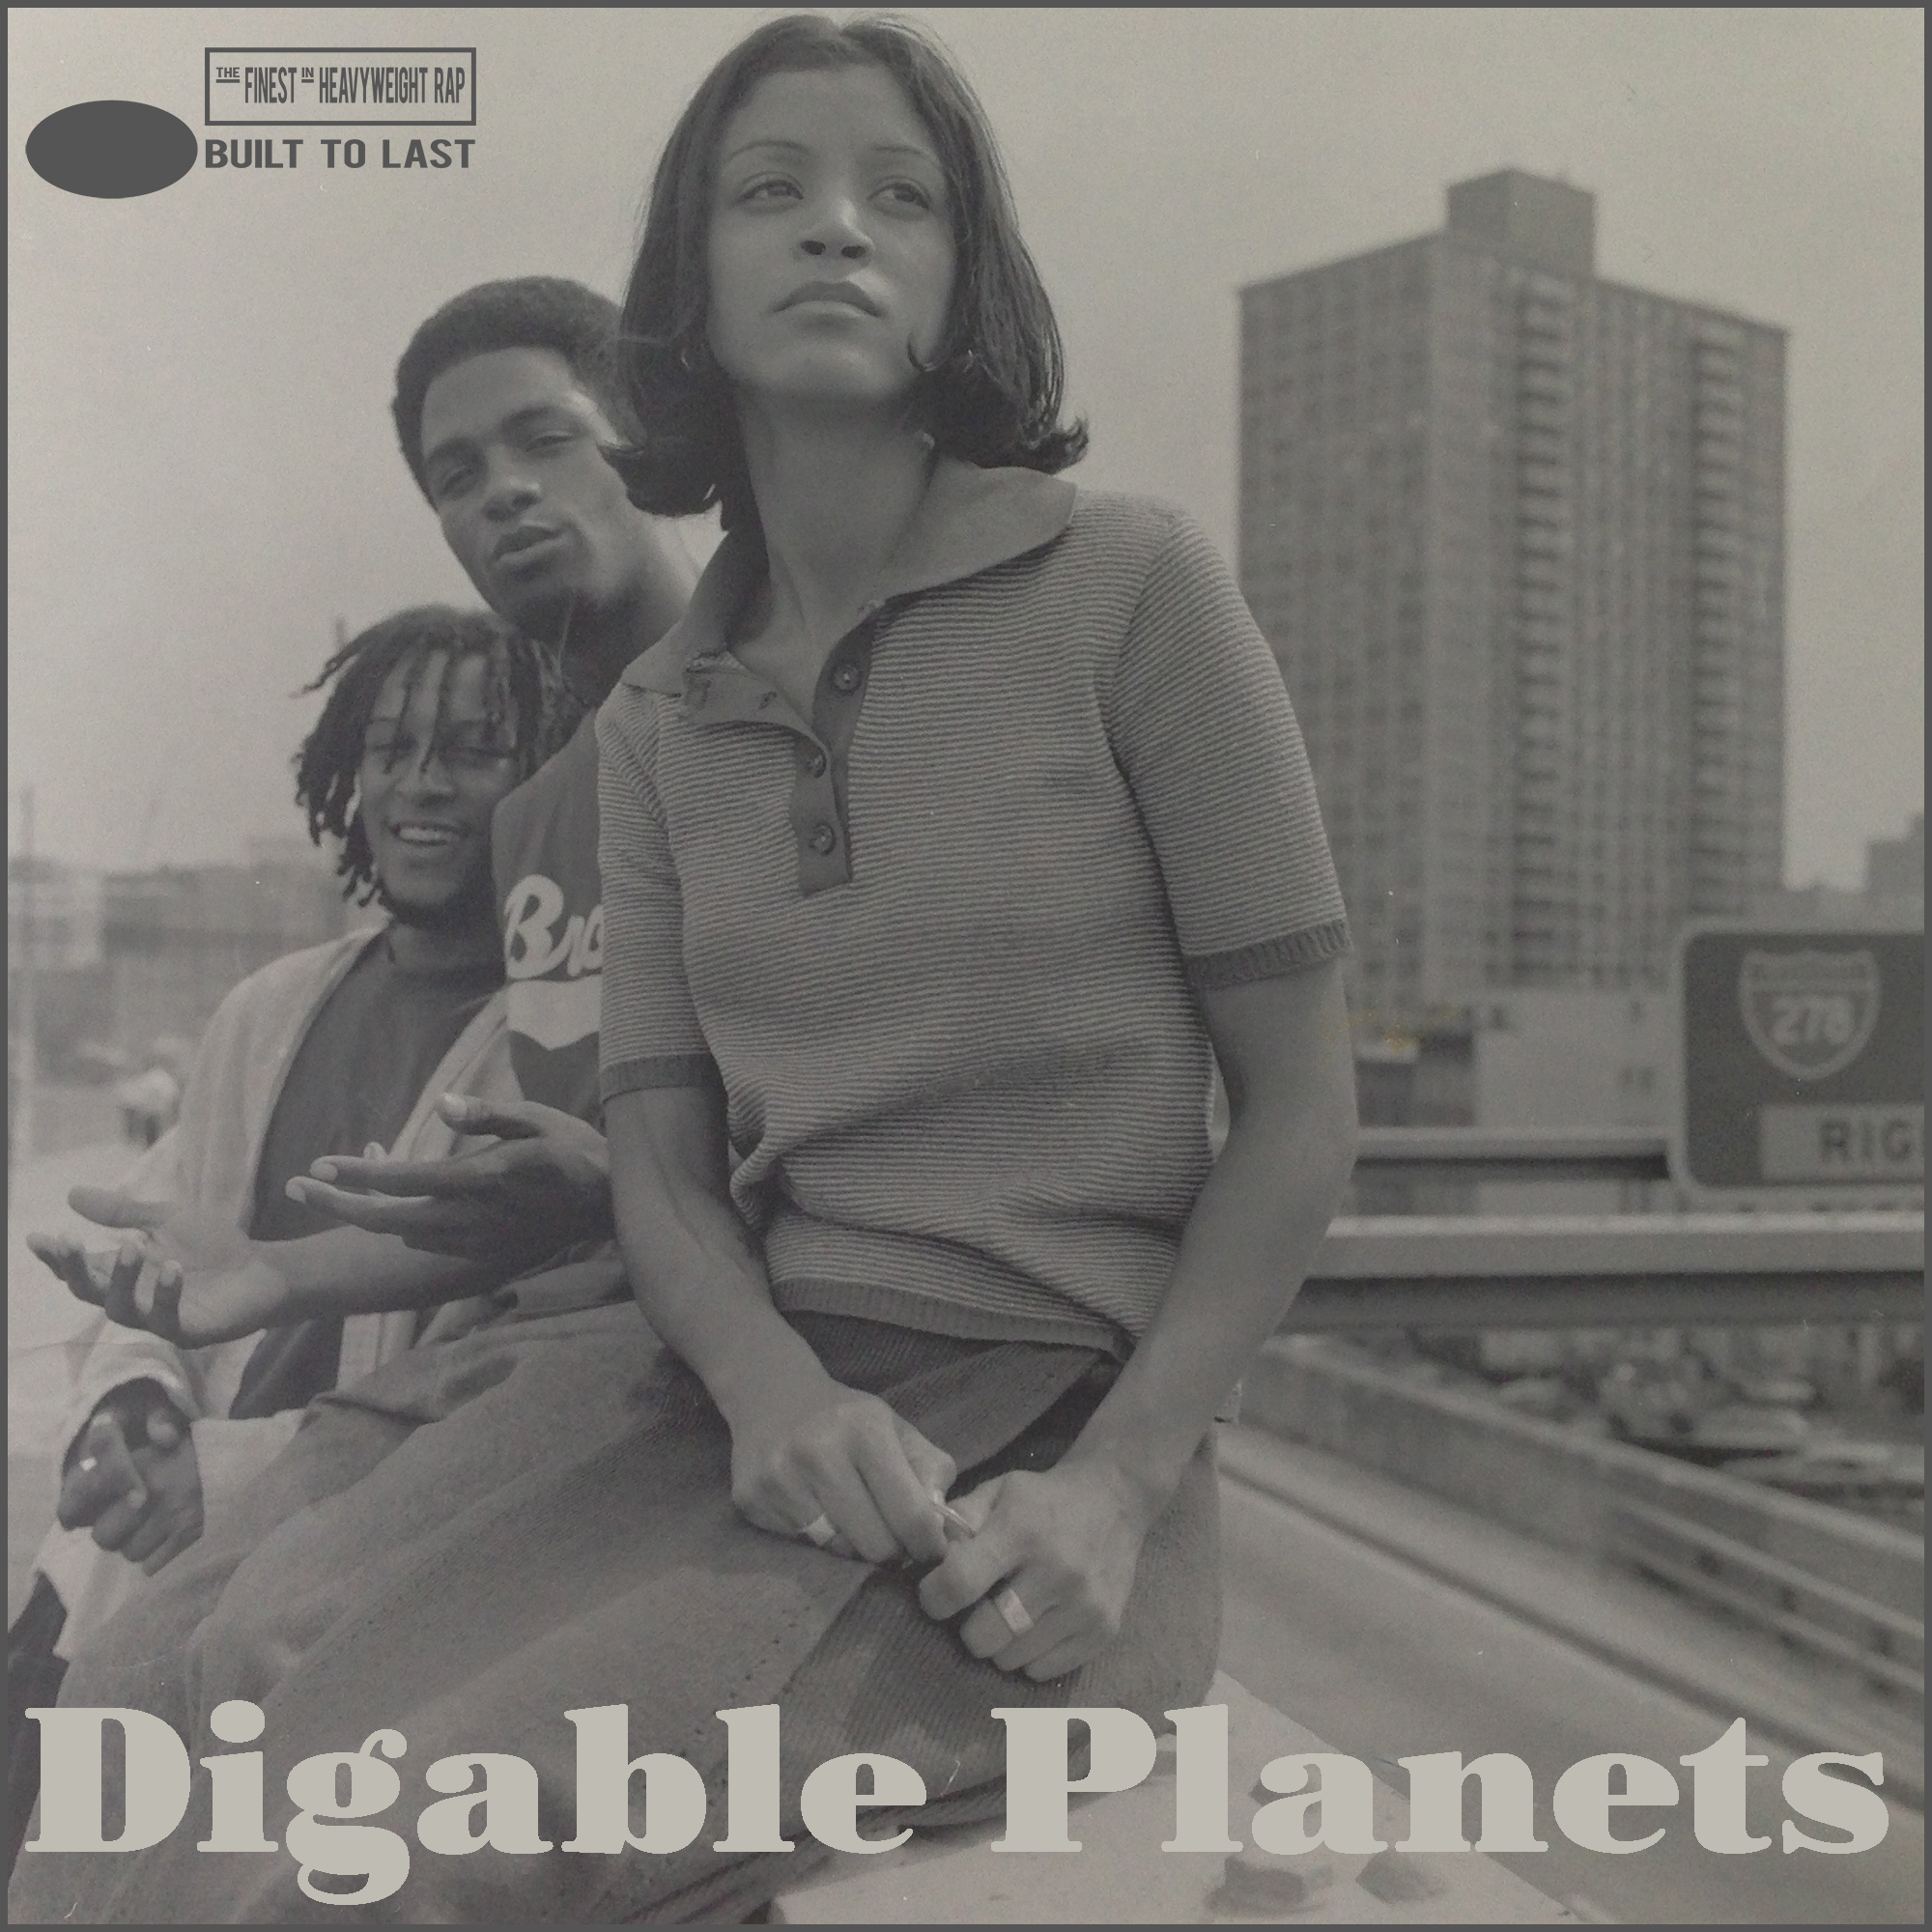 Digable Planets - BTL Mix